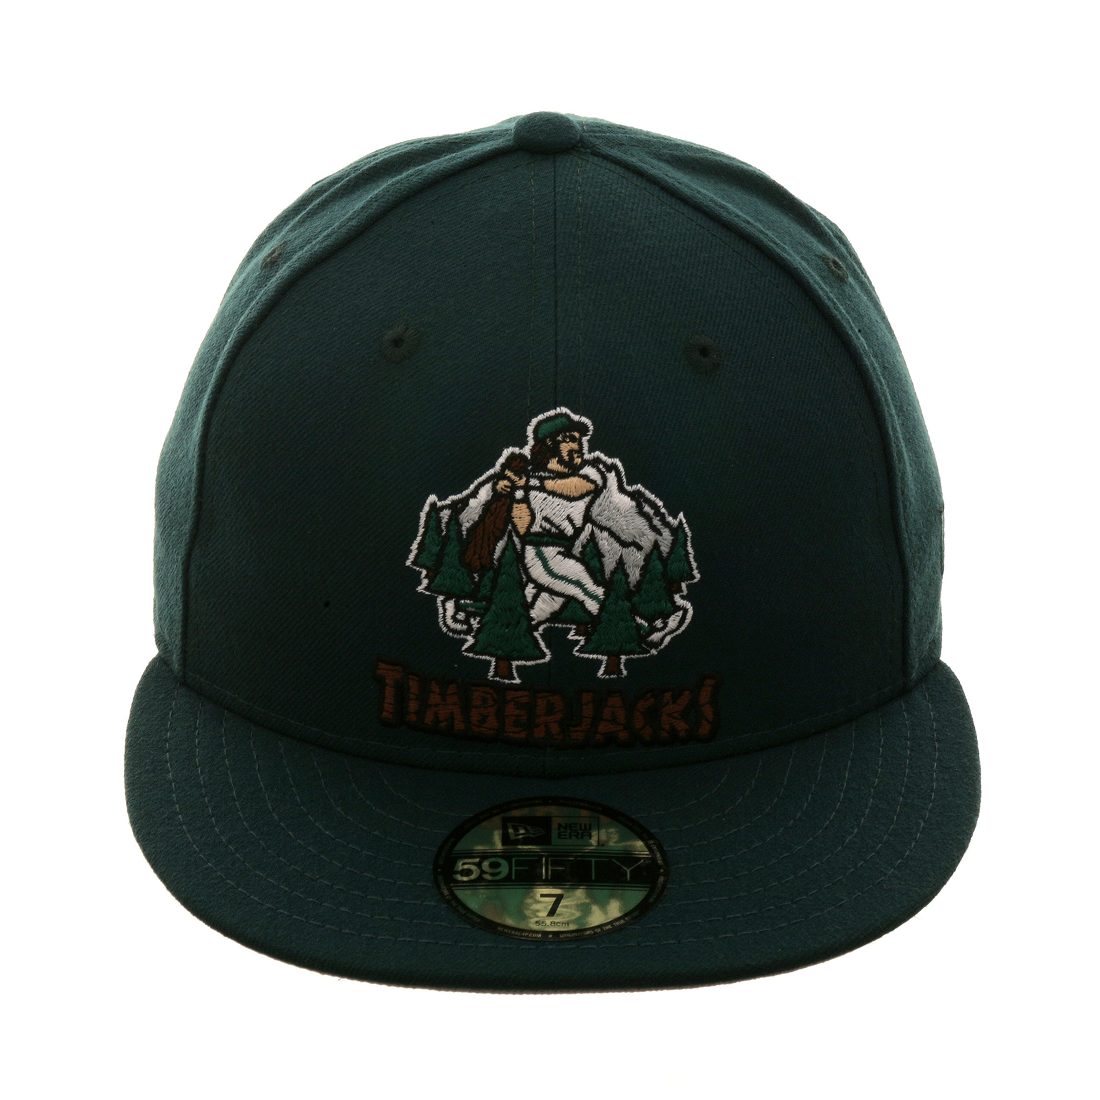 faa1536fb88 Exclusive New Era 59Fifty Southern Oregon Timberjacks Hat - Forest Green